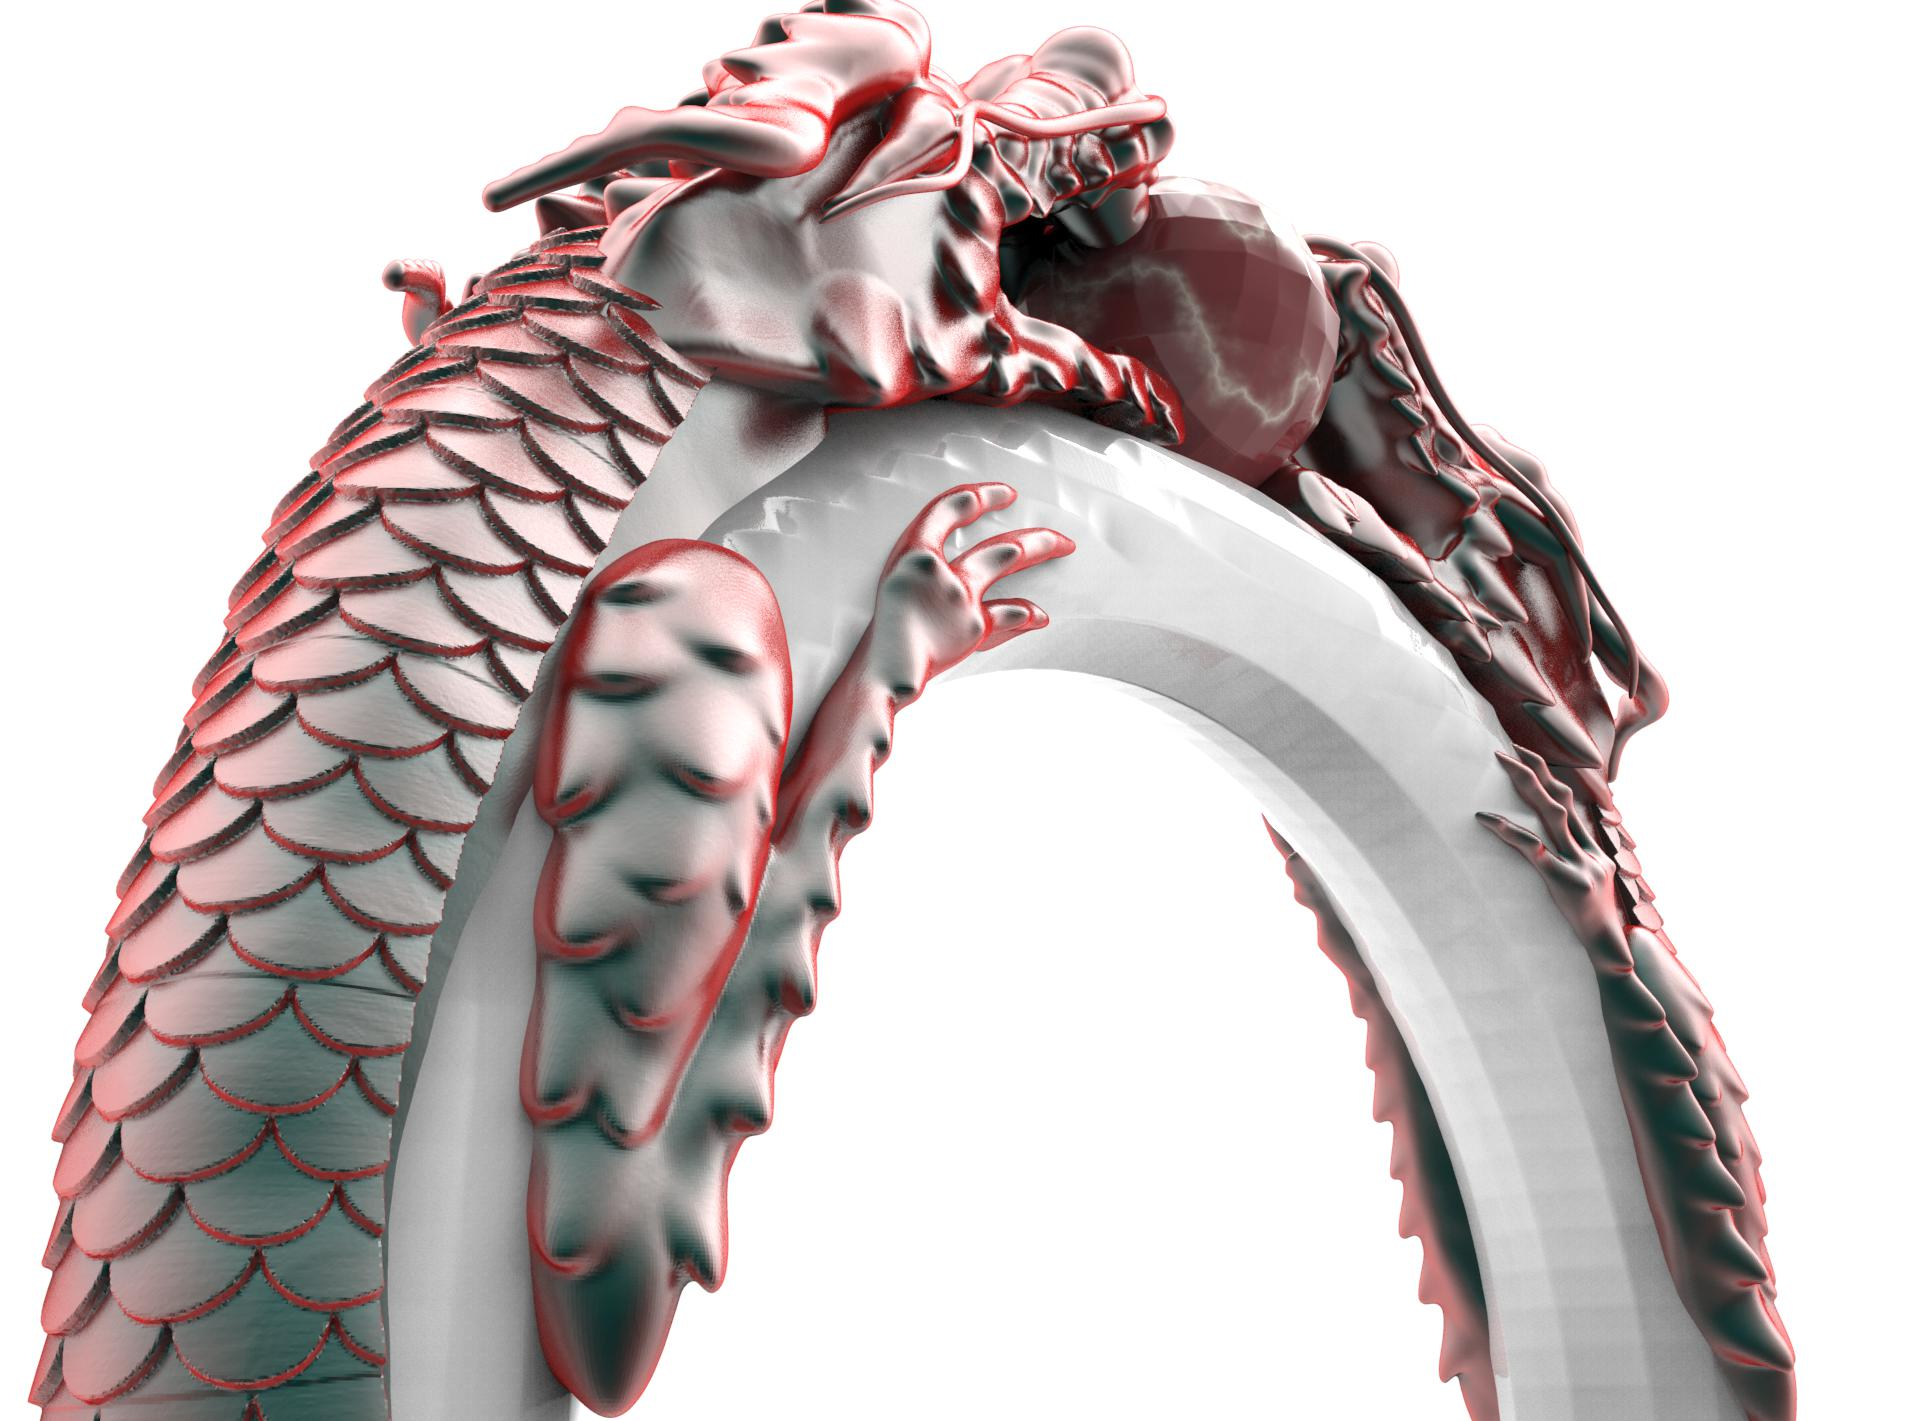 Dragon Ring Or3d